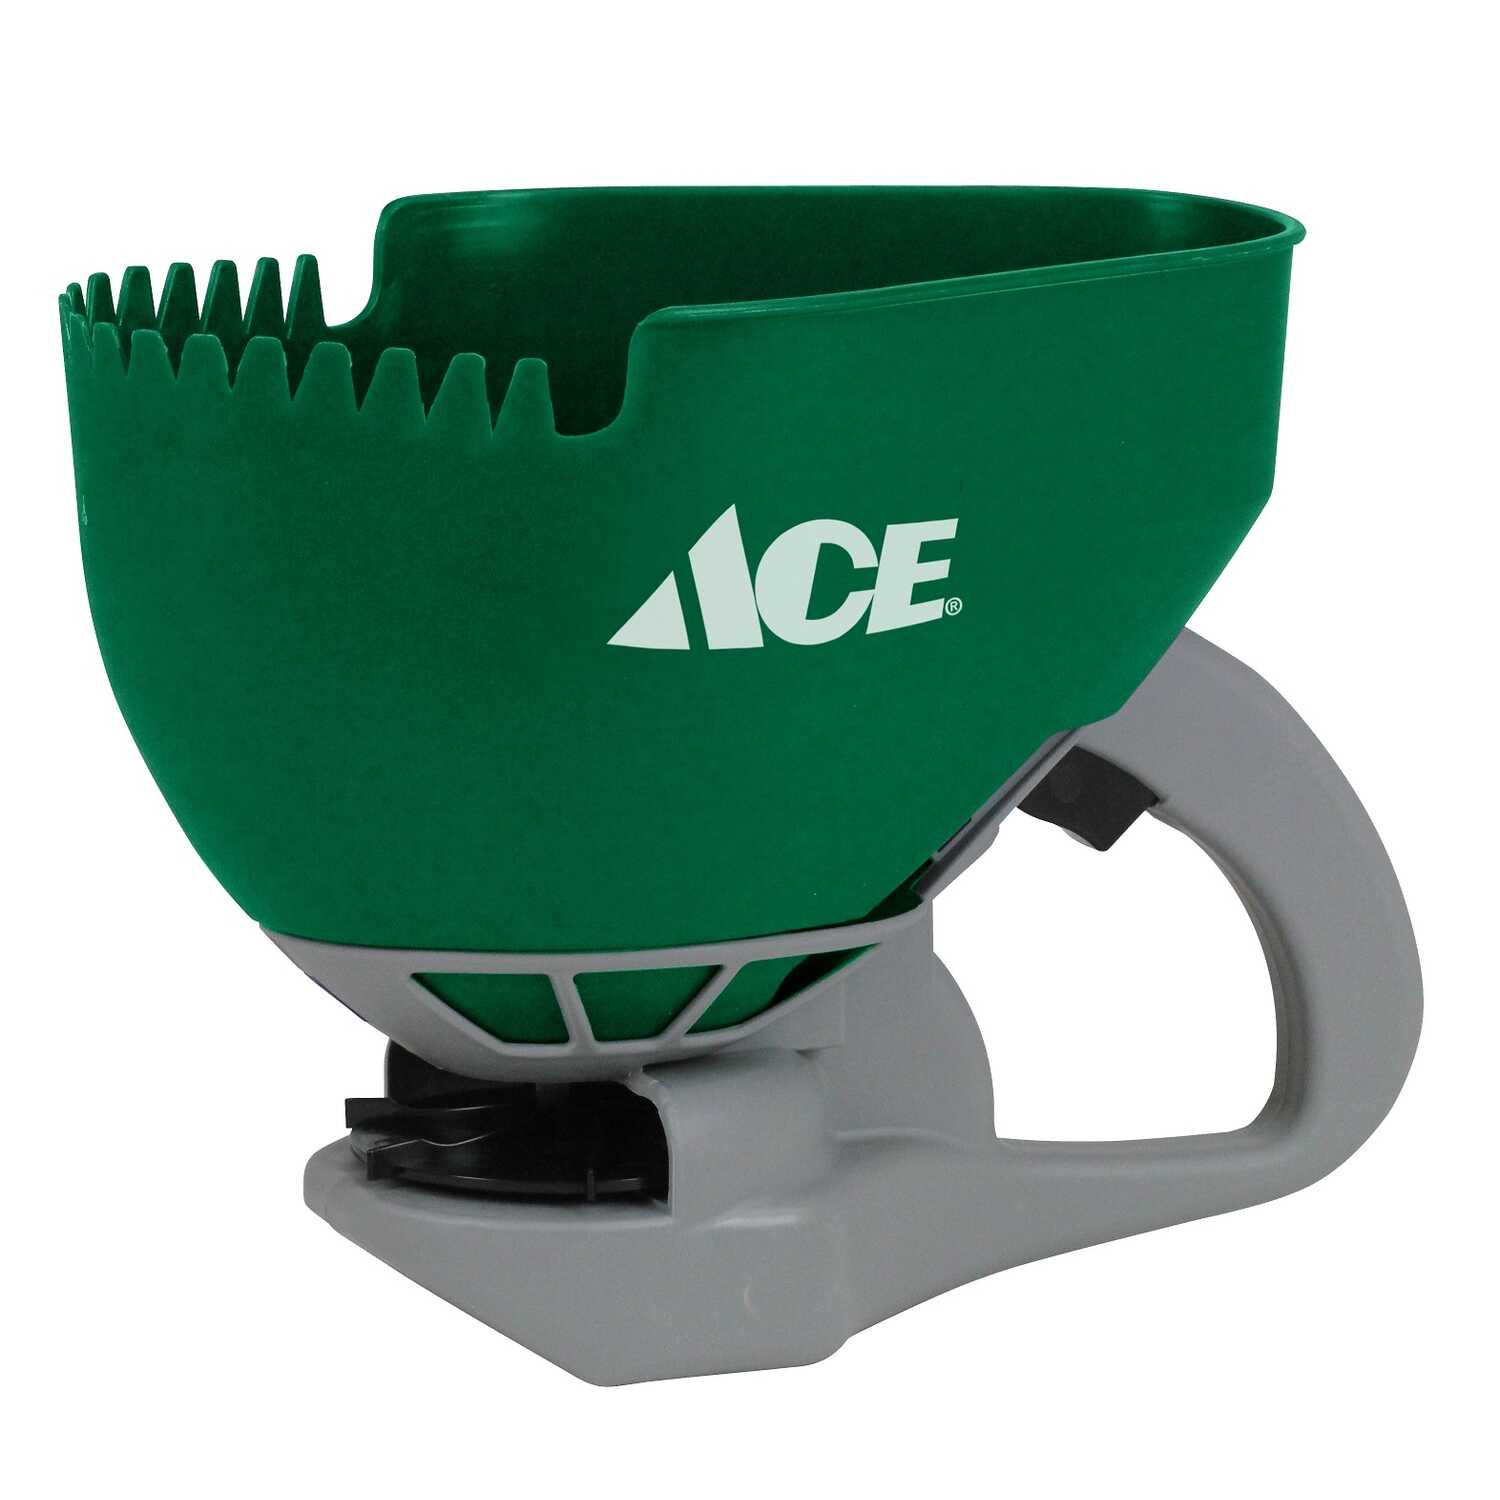 Ace  Handheld  Spreader  For Fertilizer/Grass Seed/Ice Melt 2.5 lb.